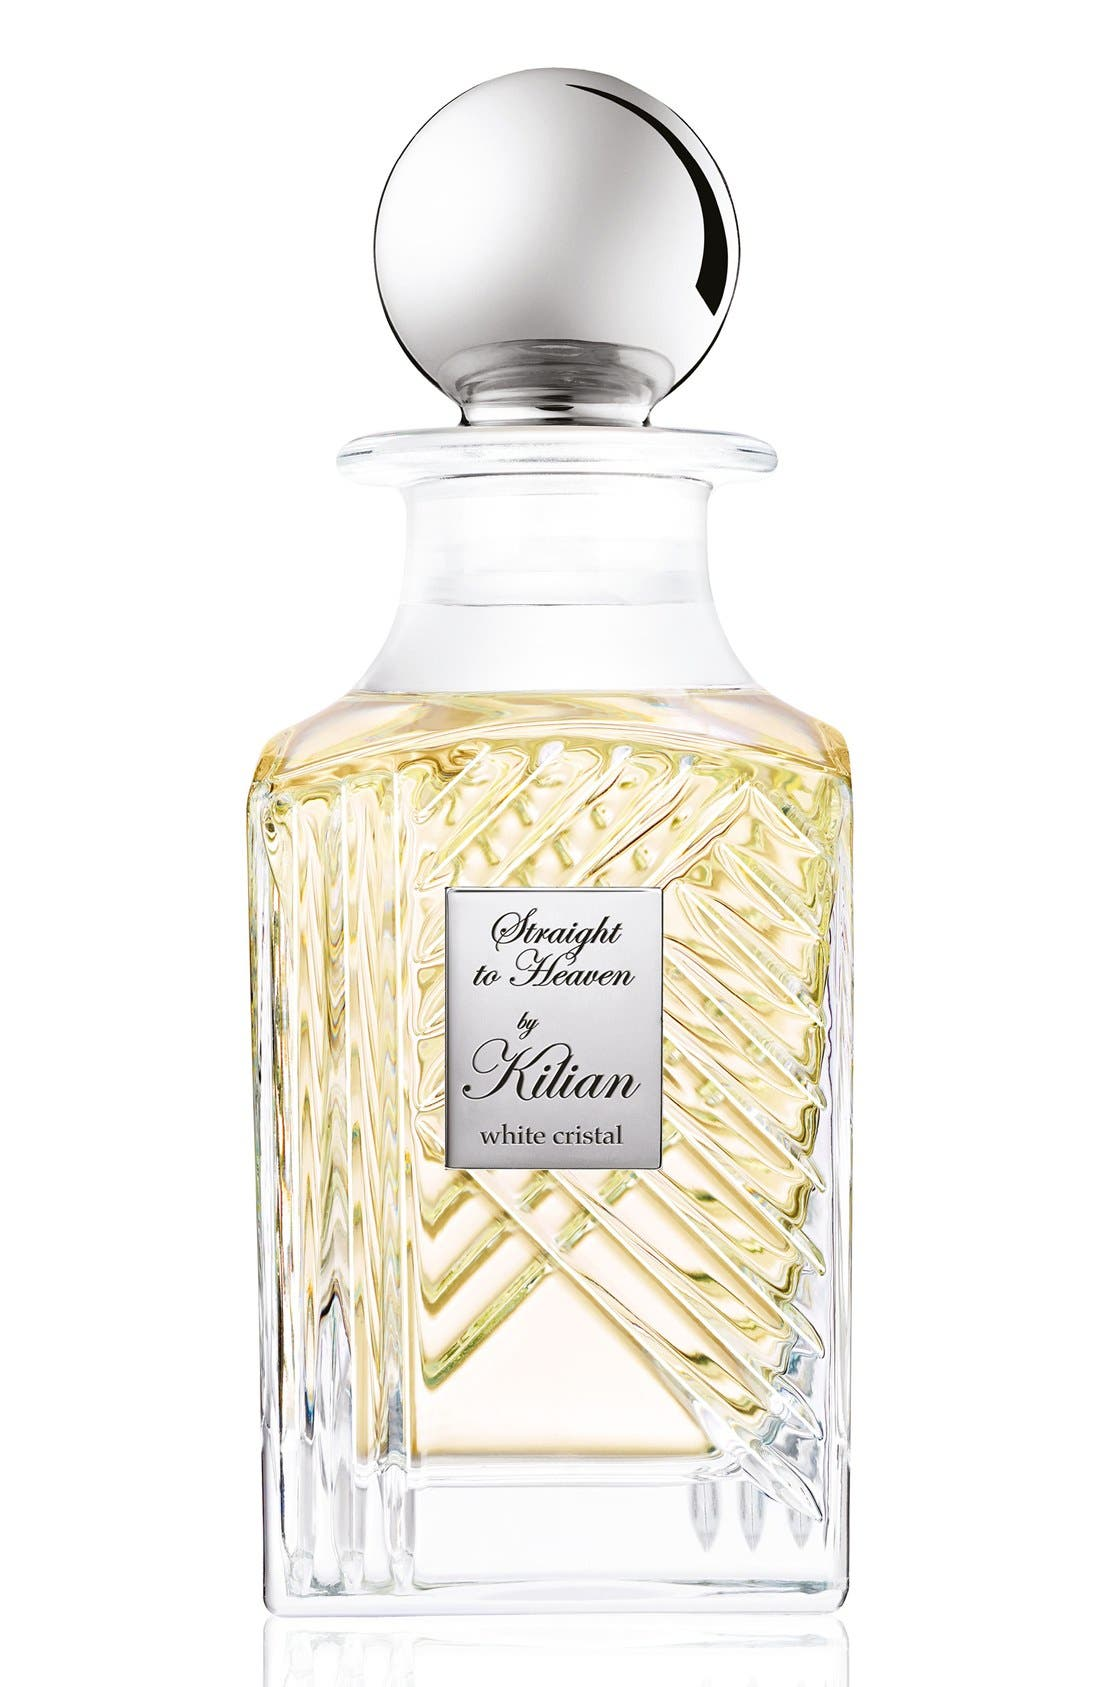 Kilian 'L'Oeuvre Noire - Straight to Heaven, white cristal' Mini Fragrance Carafe